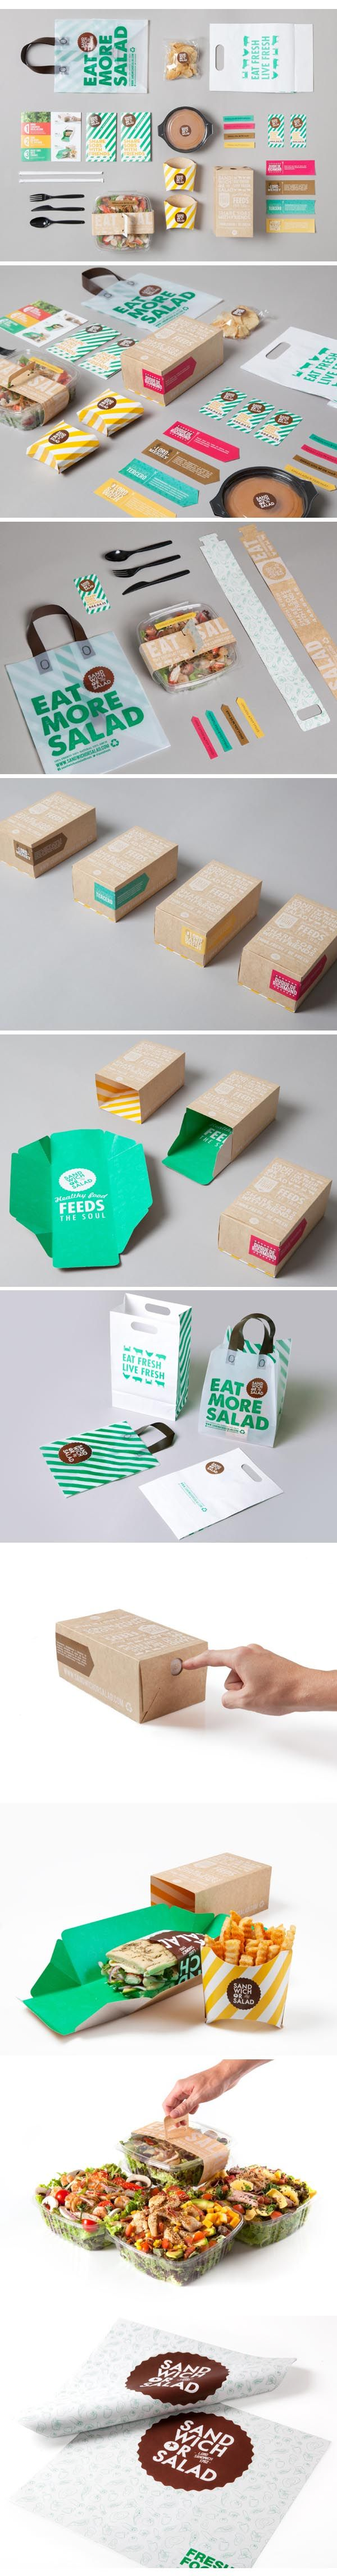 Sandwich or Salad by Masif #branding